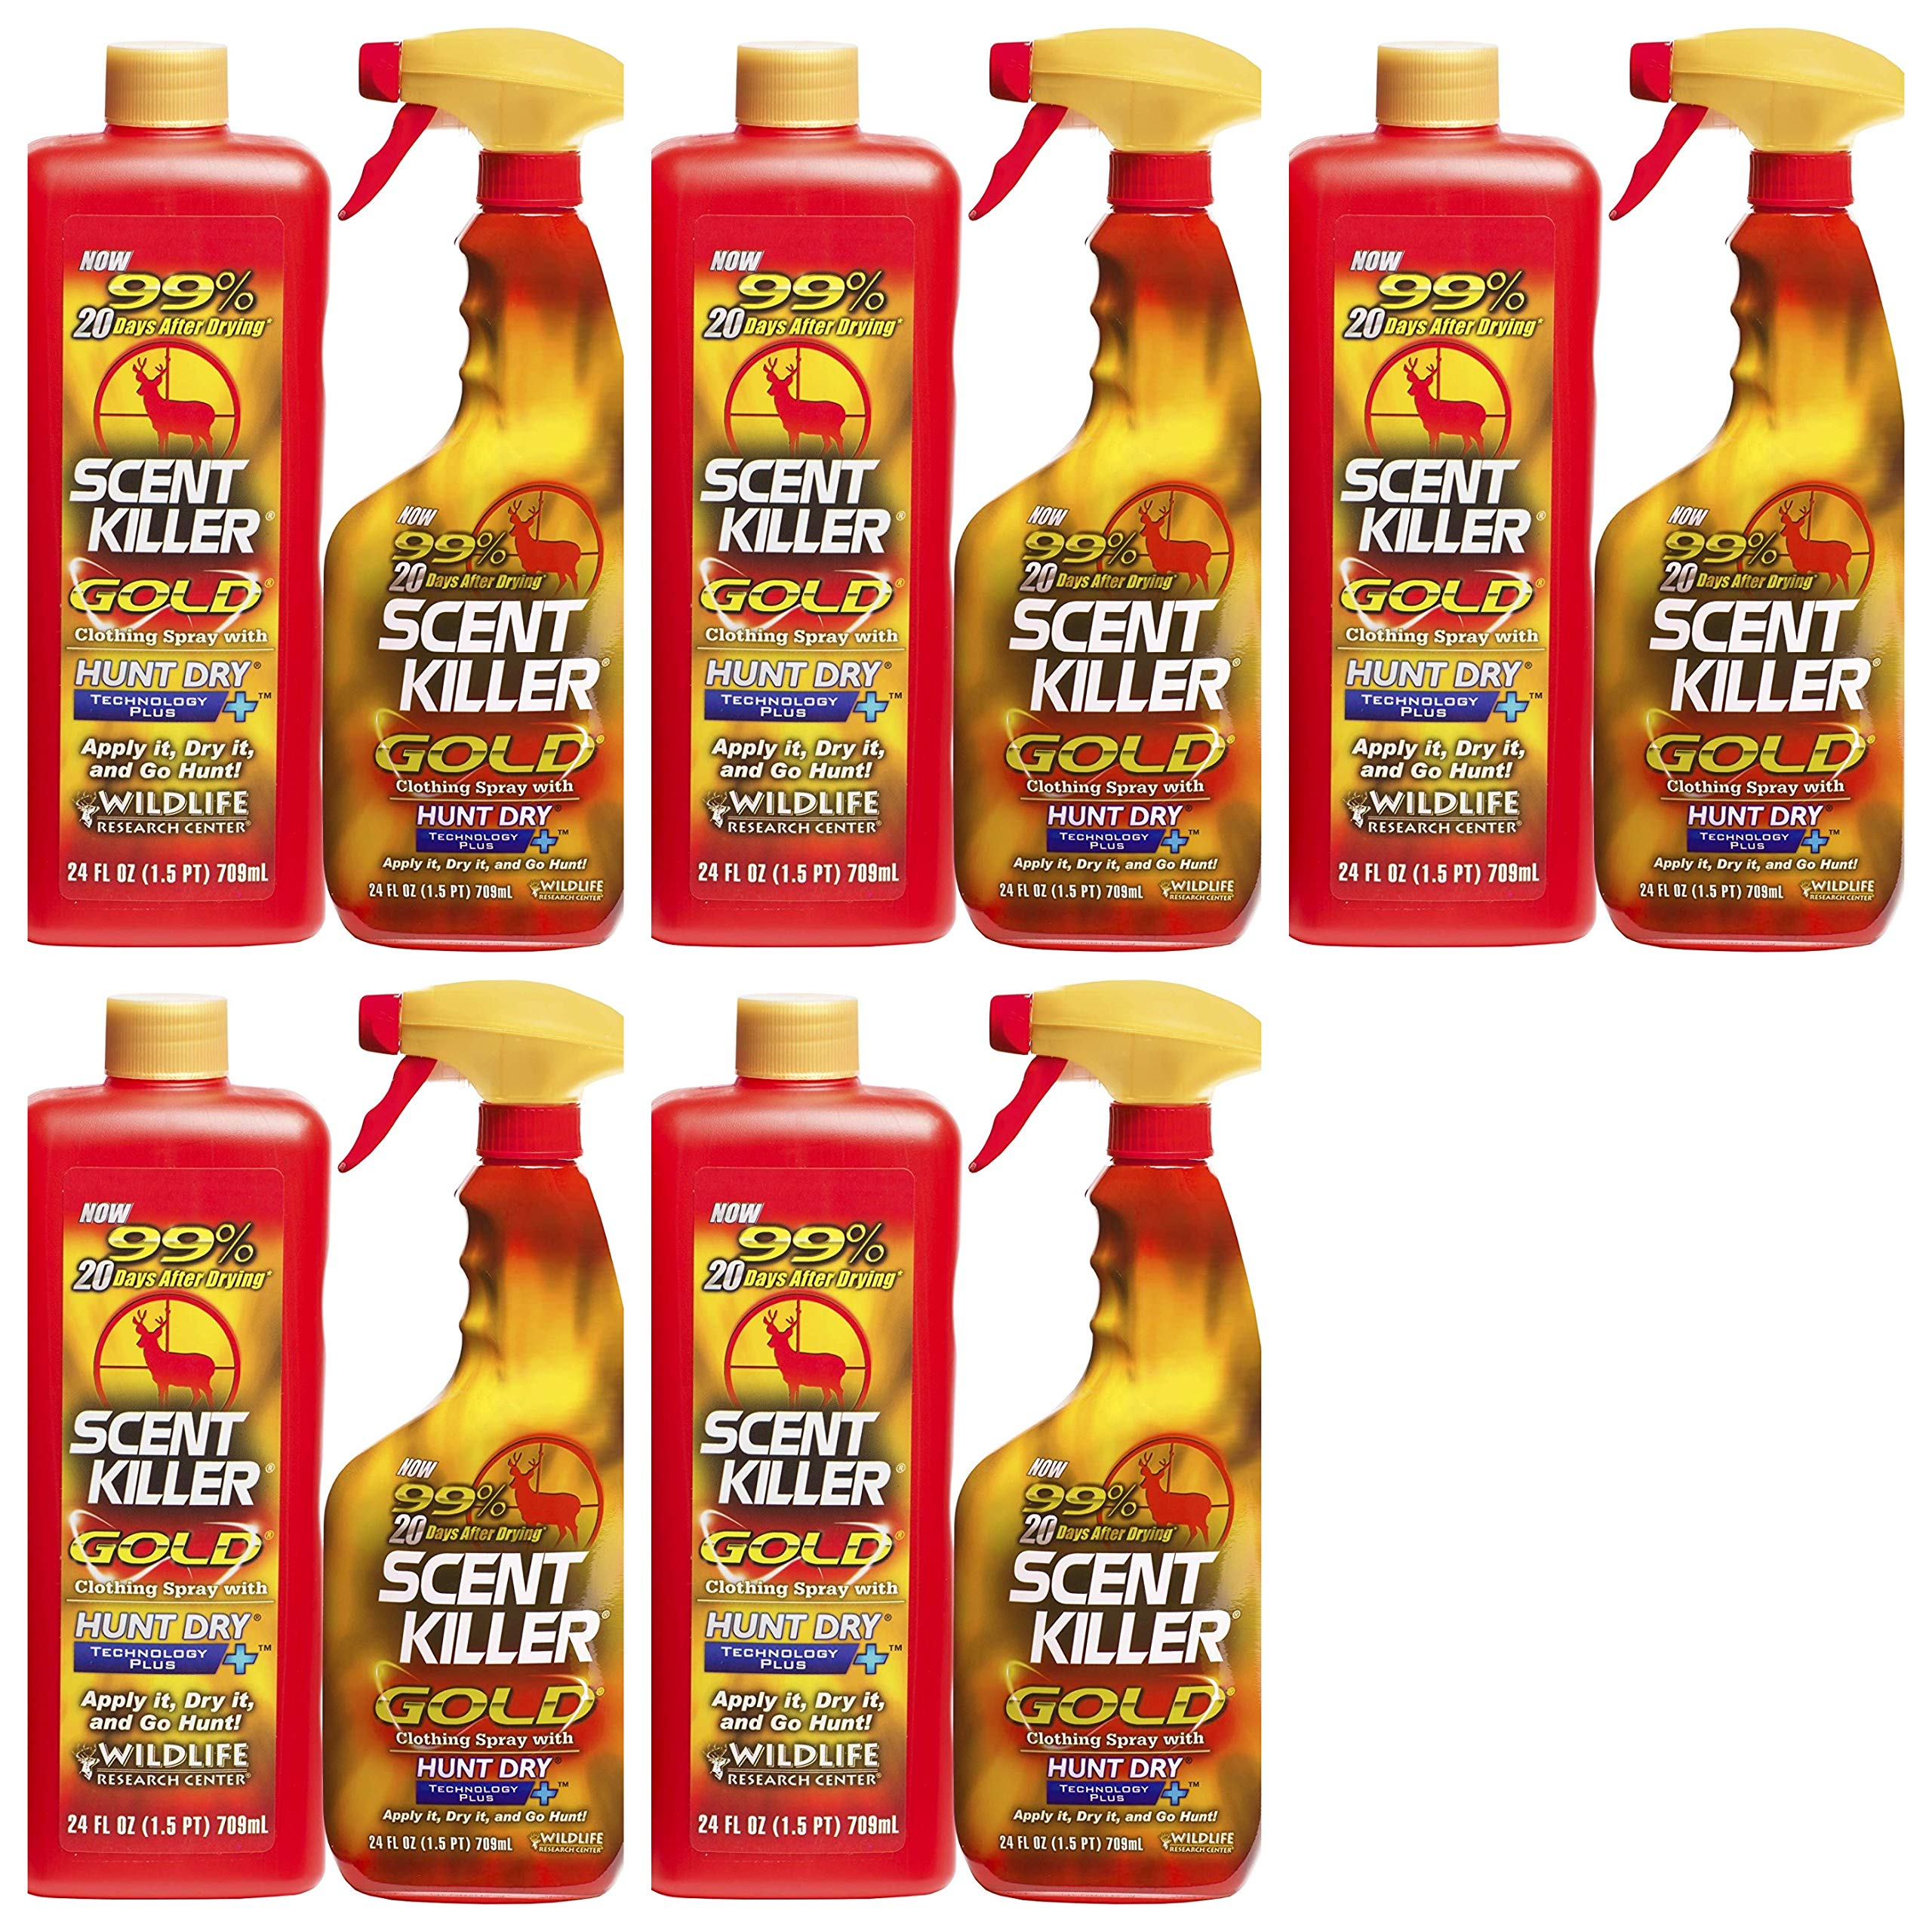 Scent Killer 1259 Wildlife Research Gold 24/24 Combo, 48 oz. (Fіvе Расk) by Scent Killer